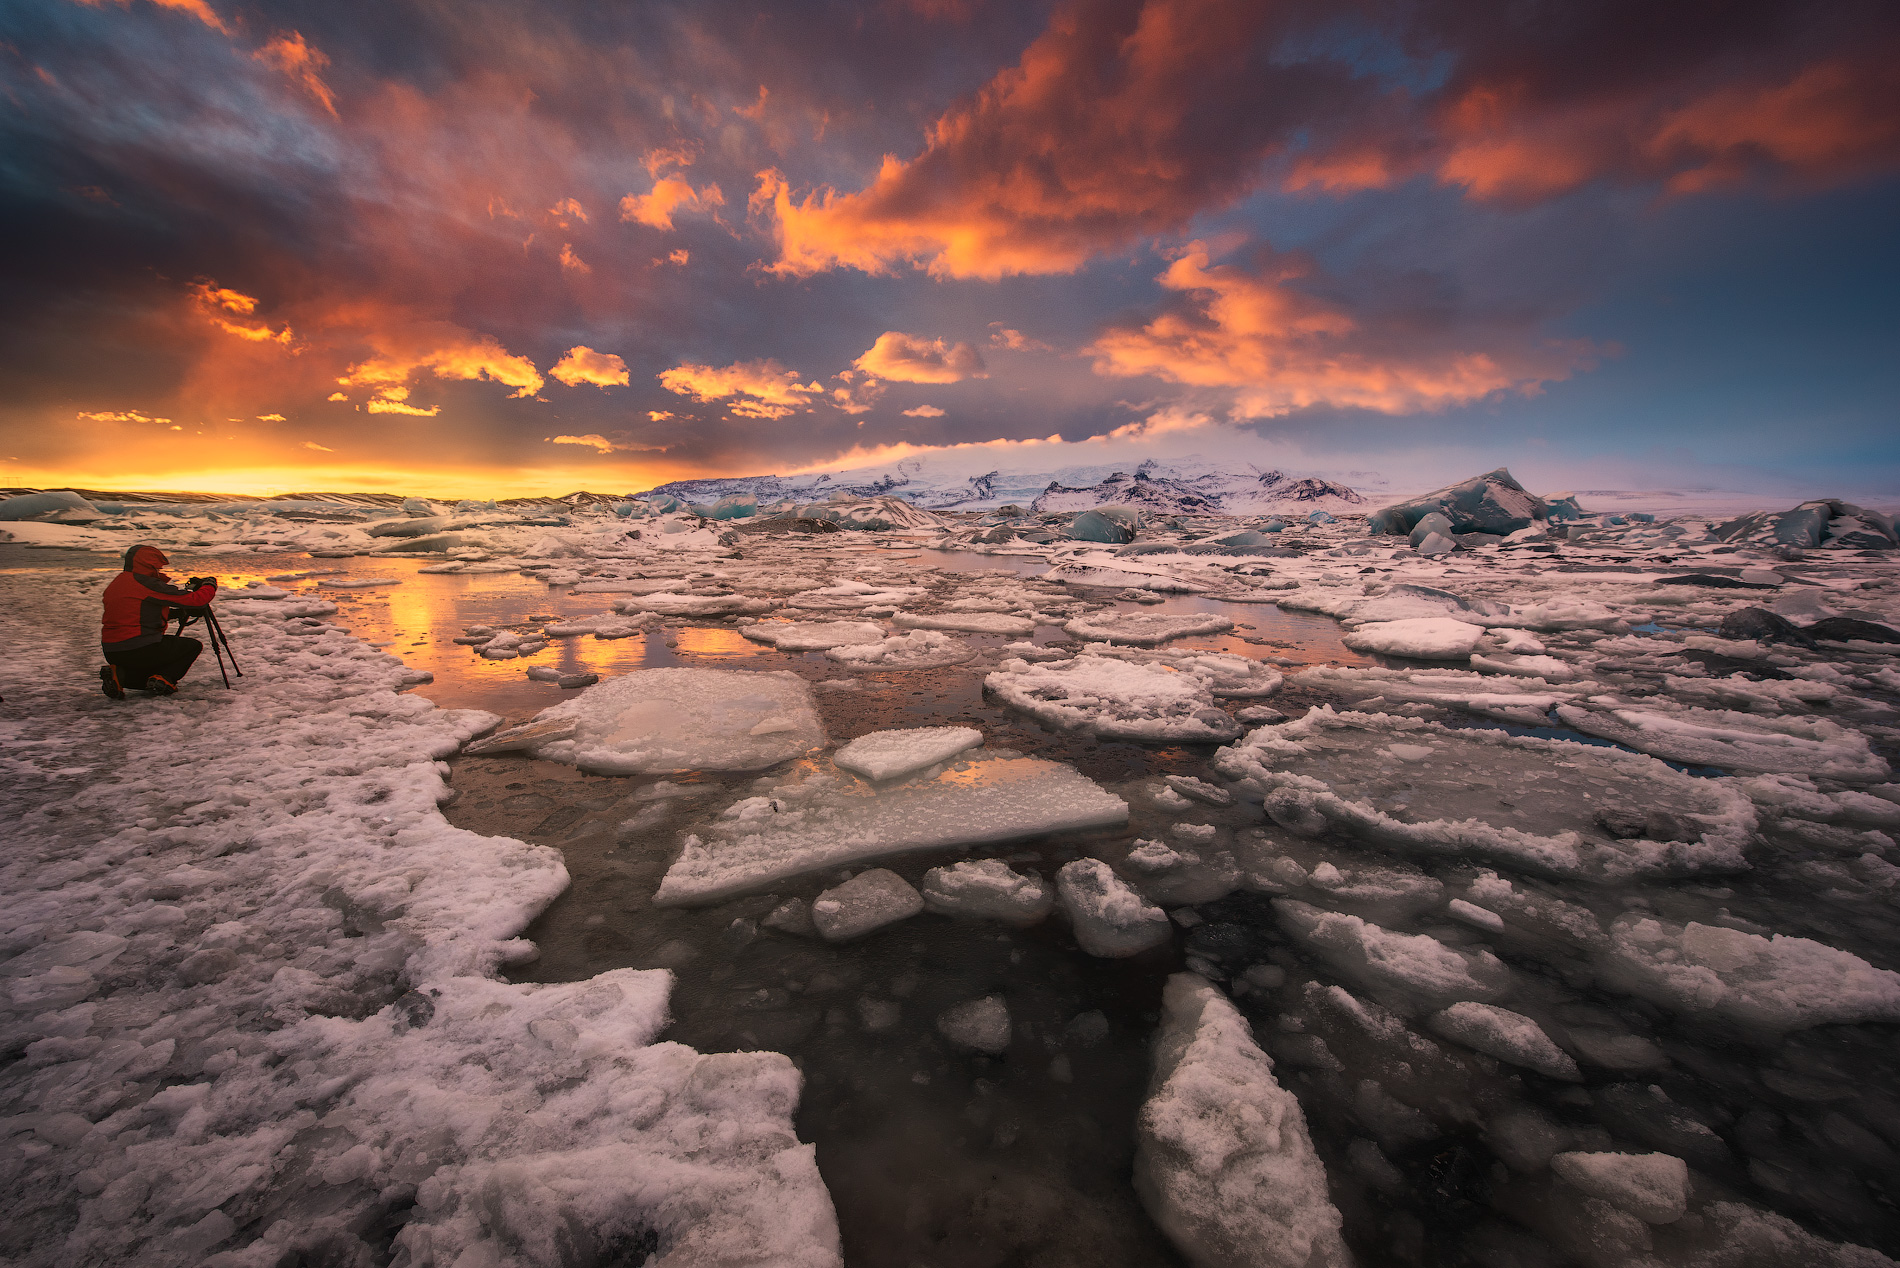 Golden Hour, the perfect photography time at Jökulsárlón glacier lagoon.